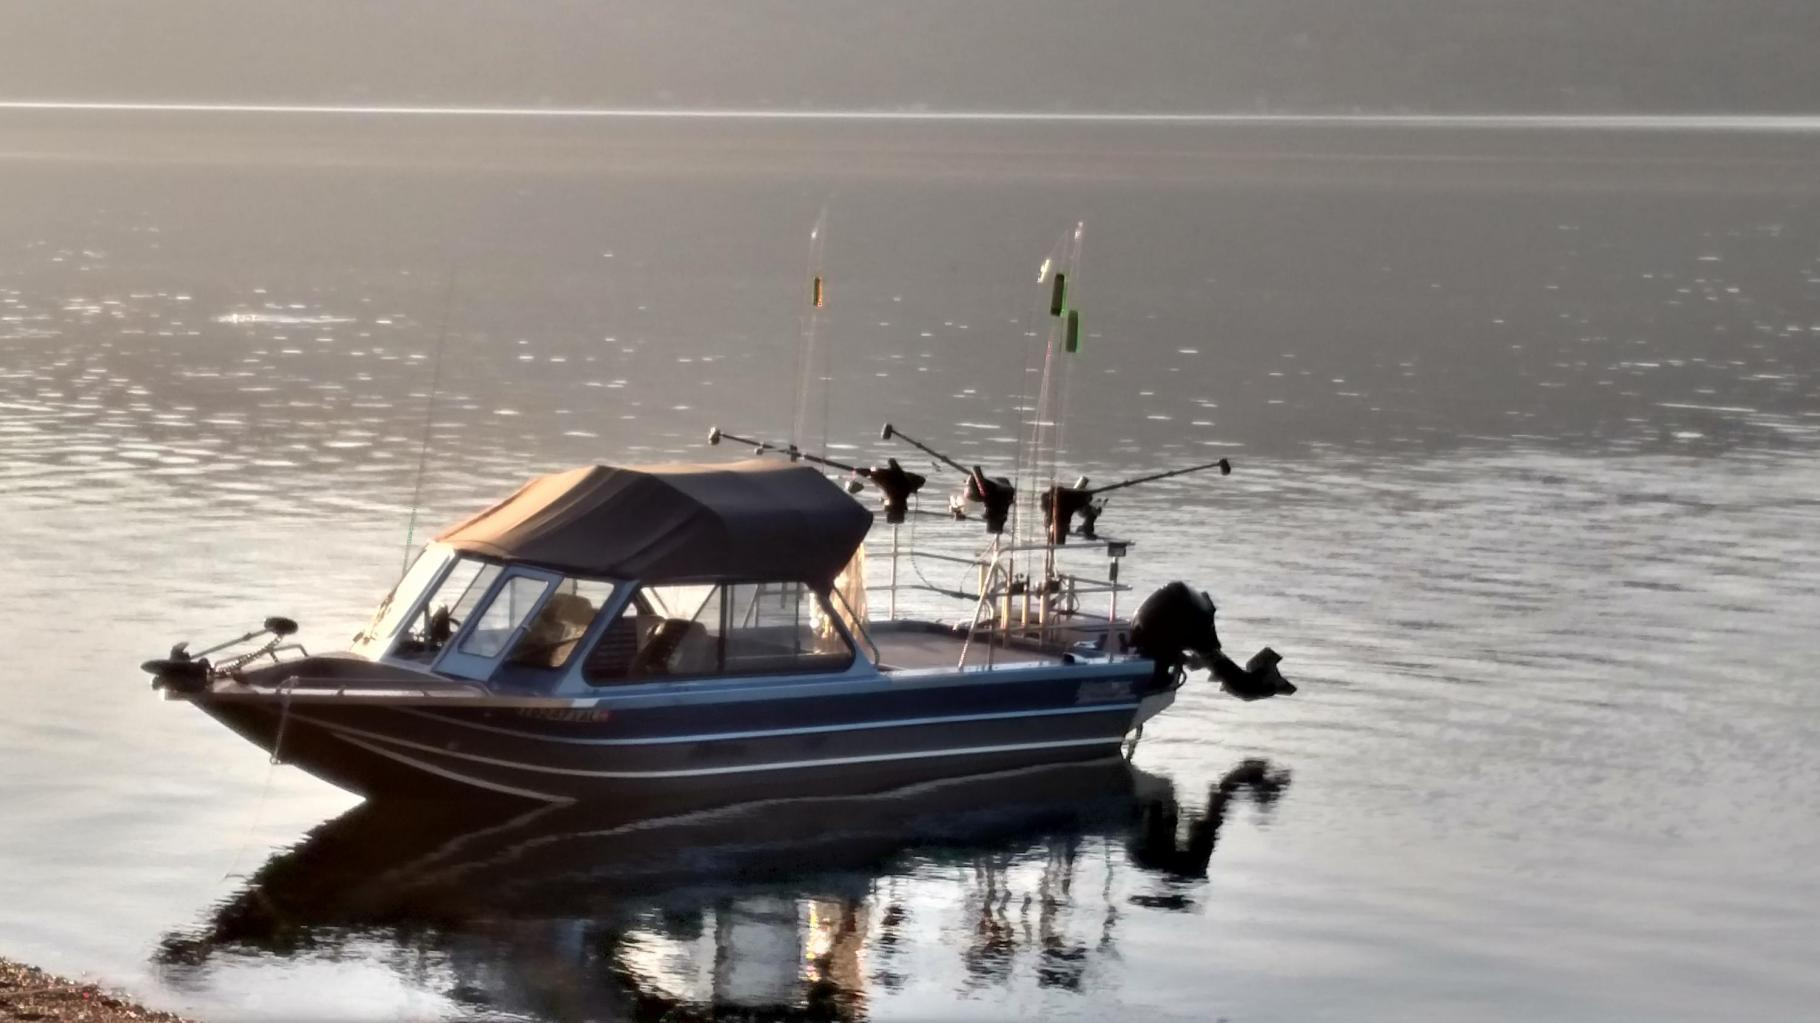 Lake Coeur d'Alene fishing charter license and business for sale